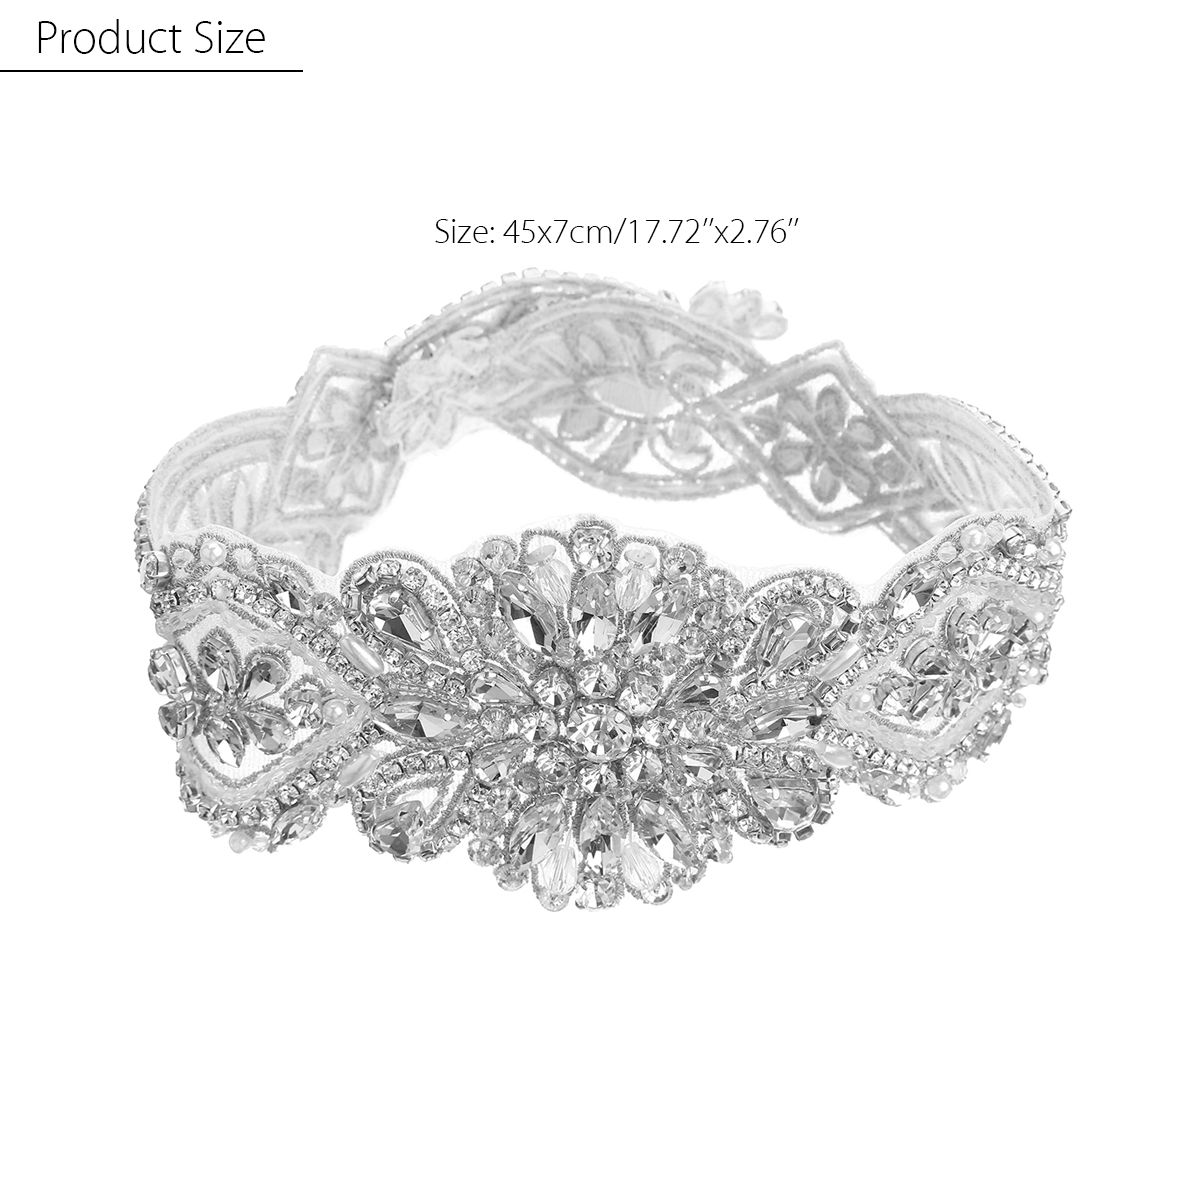 New Bridal Sash Belts Applique for DIY Wedding Dress Belt Accessories Women  Rhinestone Handmade Waistband Crystal Bride Girdle-in Women s Belts from  Apparel ... c12a3a56286f